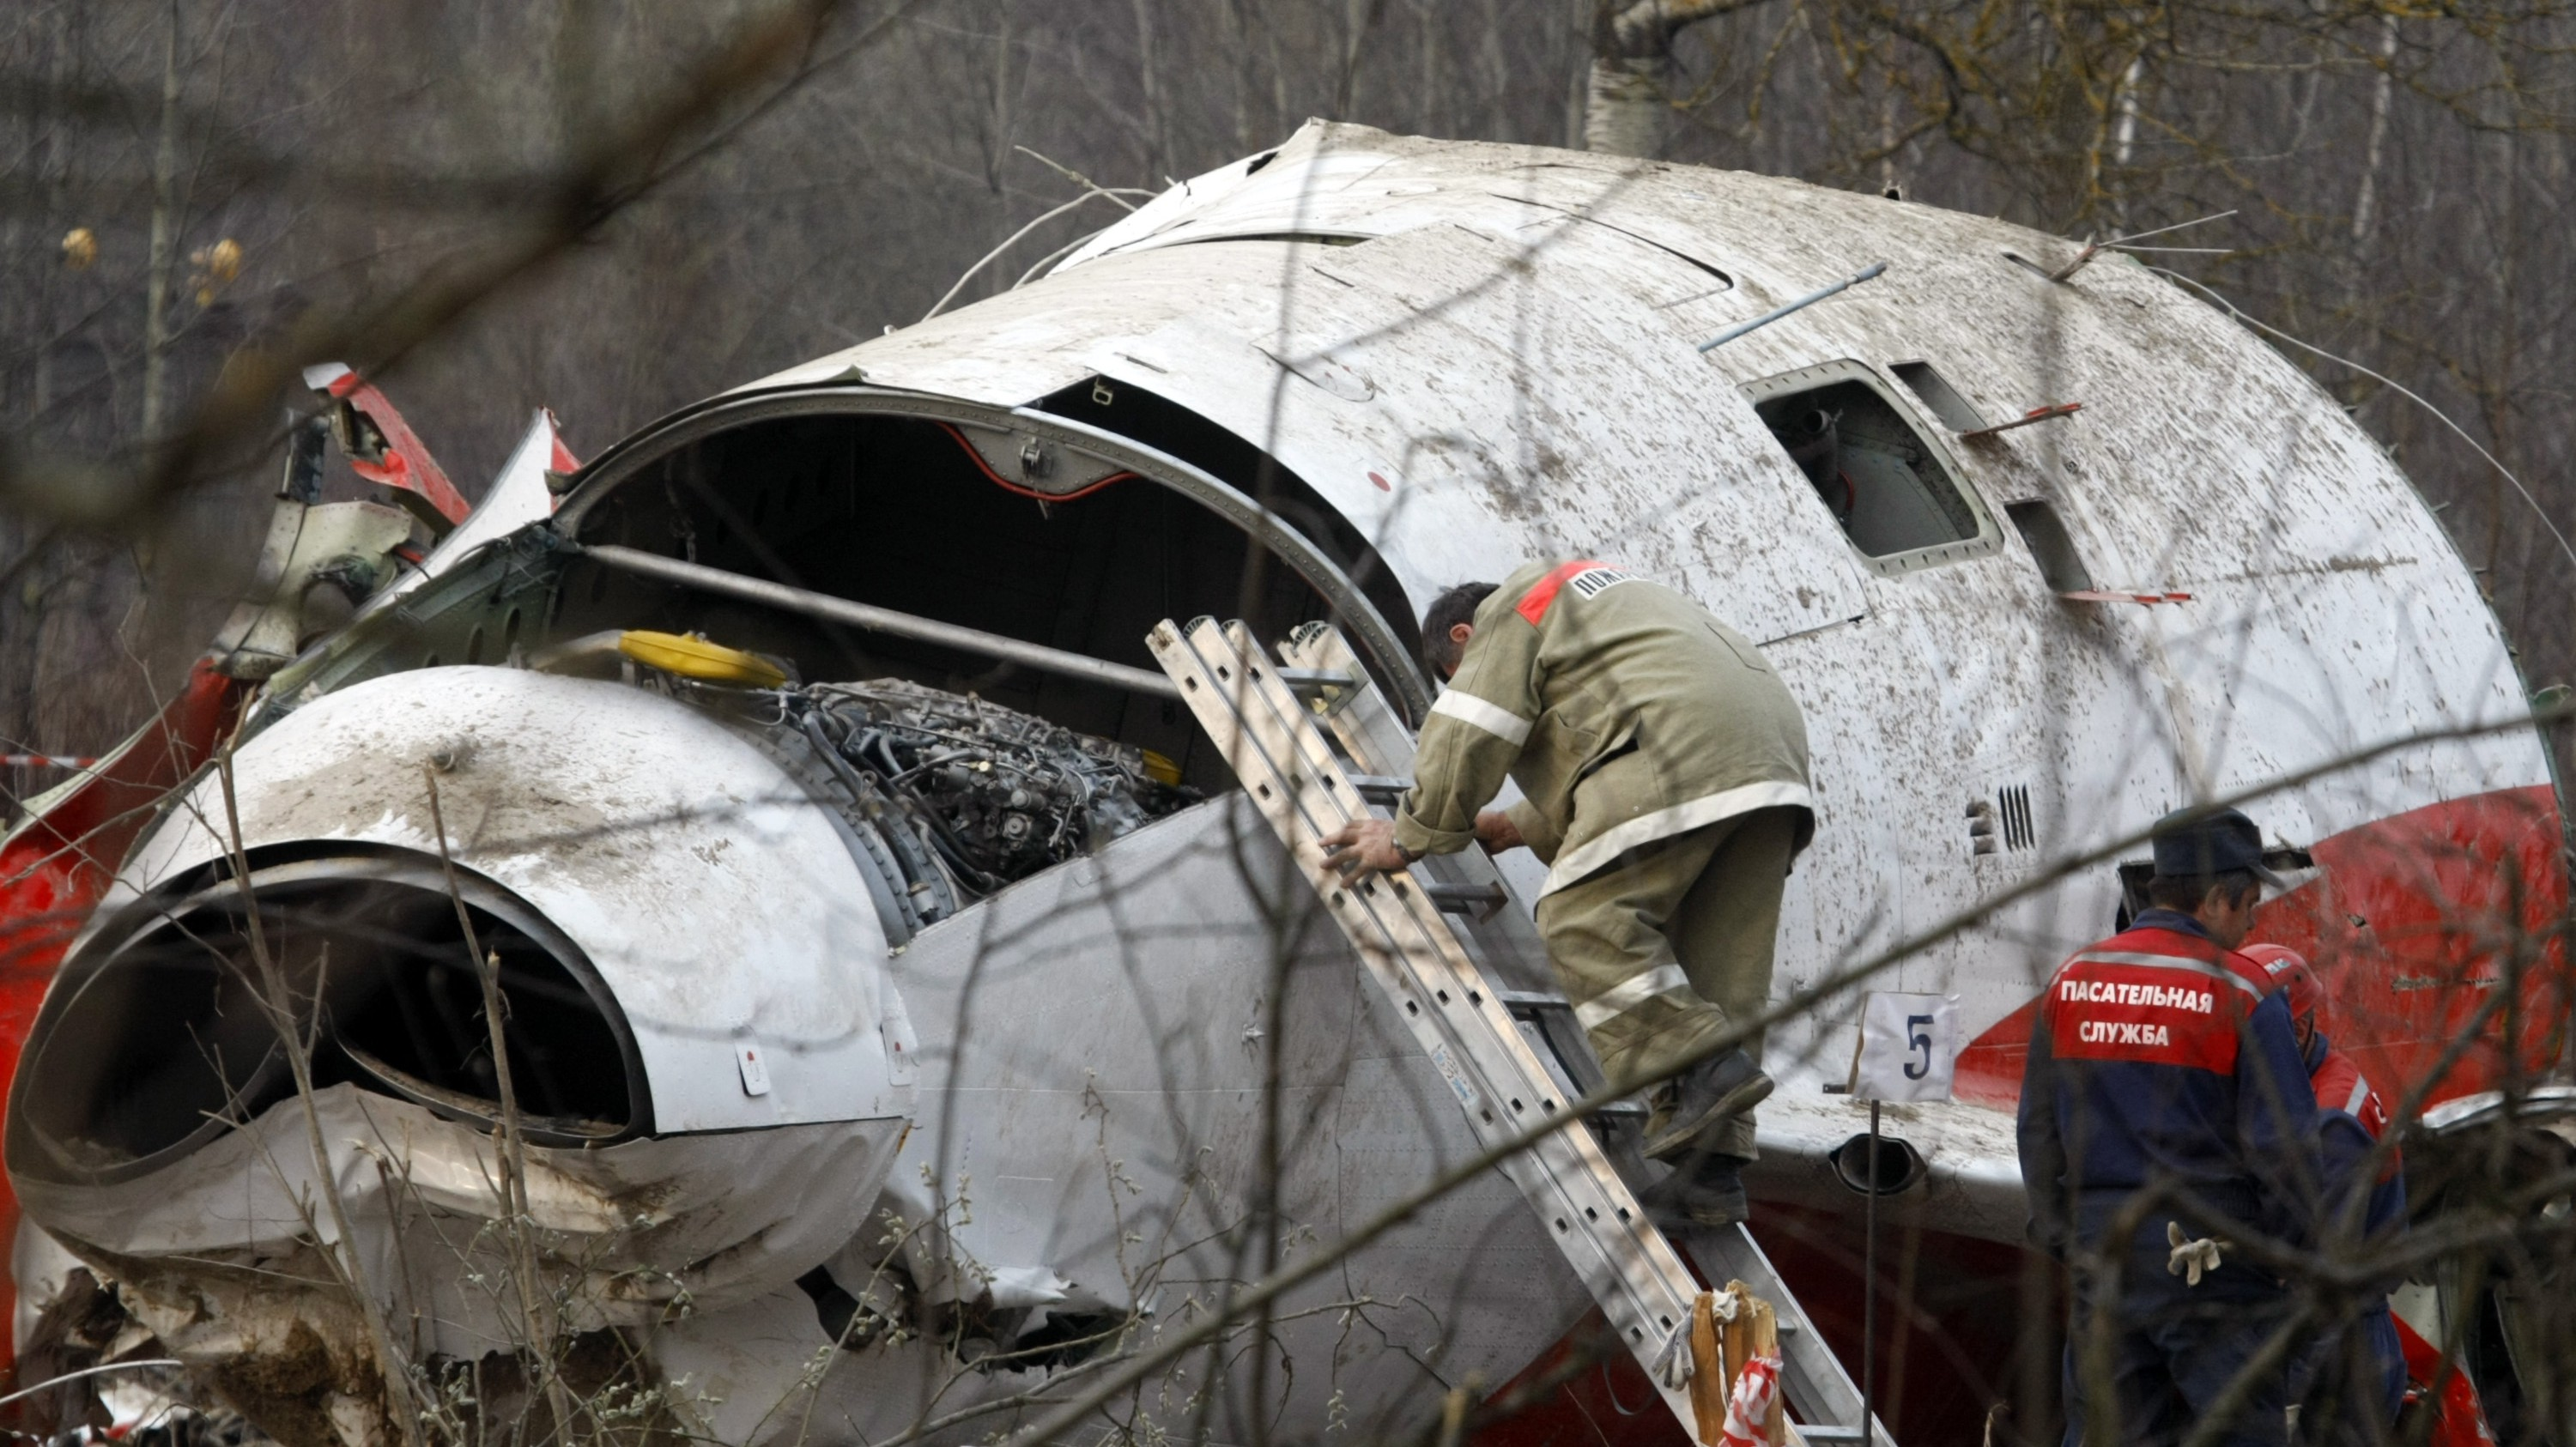 In this file photo dated Tuesday, April 13, 2010, showing unidentified Emergency ministry workers as they search through the wreckage of the Polish presidential plane is Smolensk, Russia, in which Polish President Kaczynski, his wife and some of the country's most prominent military and civilian leaders died. Russian Federal Investigative Committee said Tuesday, June 8, 2010, that four soldiers have been charged with stealing credit cards from the wreckage of the plane crash that killed Kaczynski and 95 others.